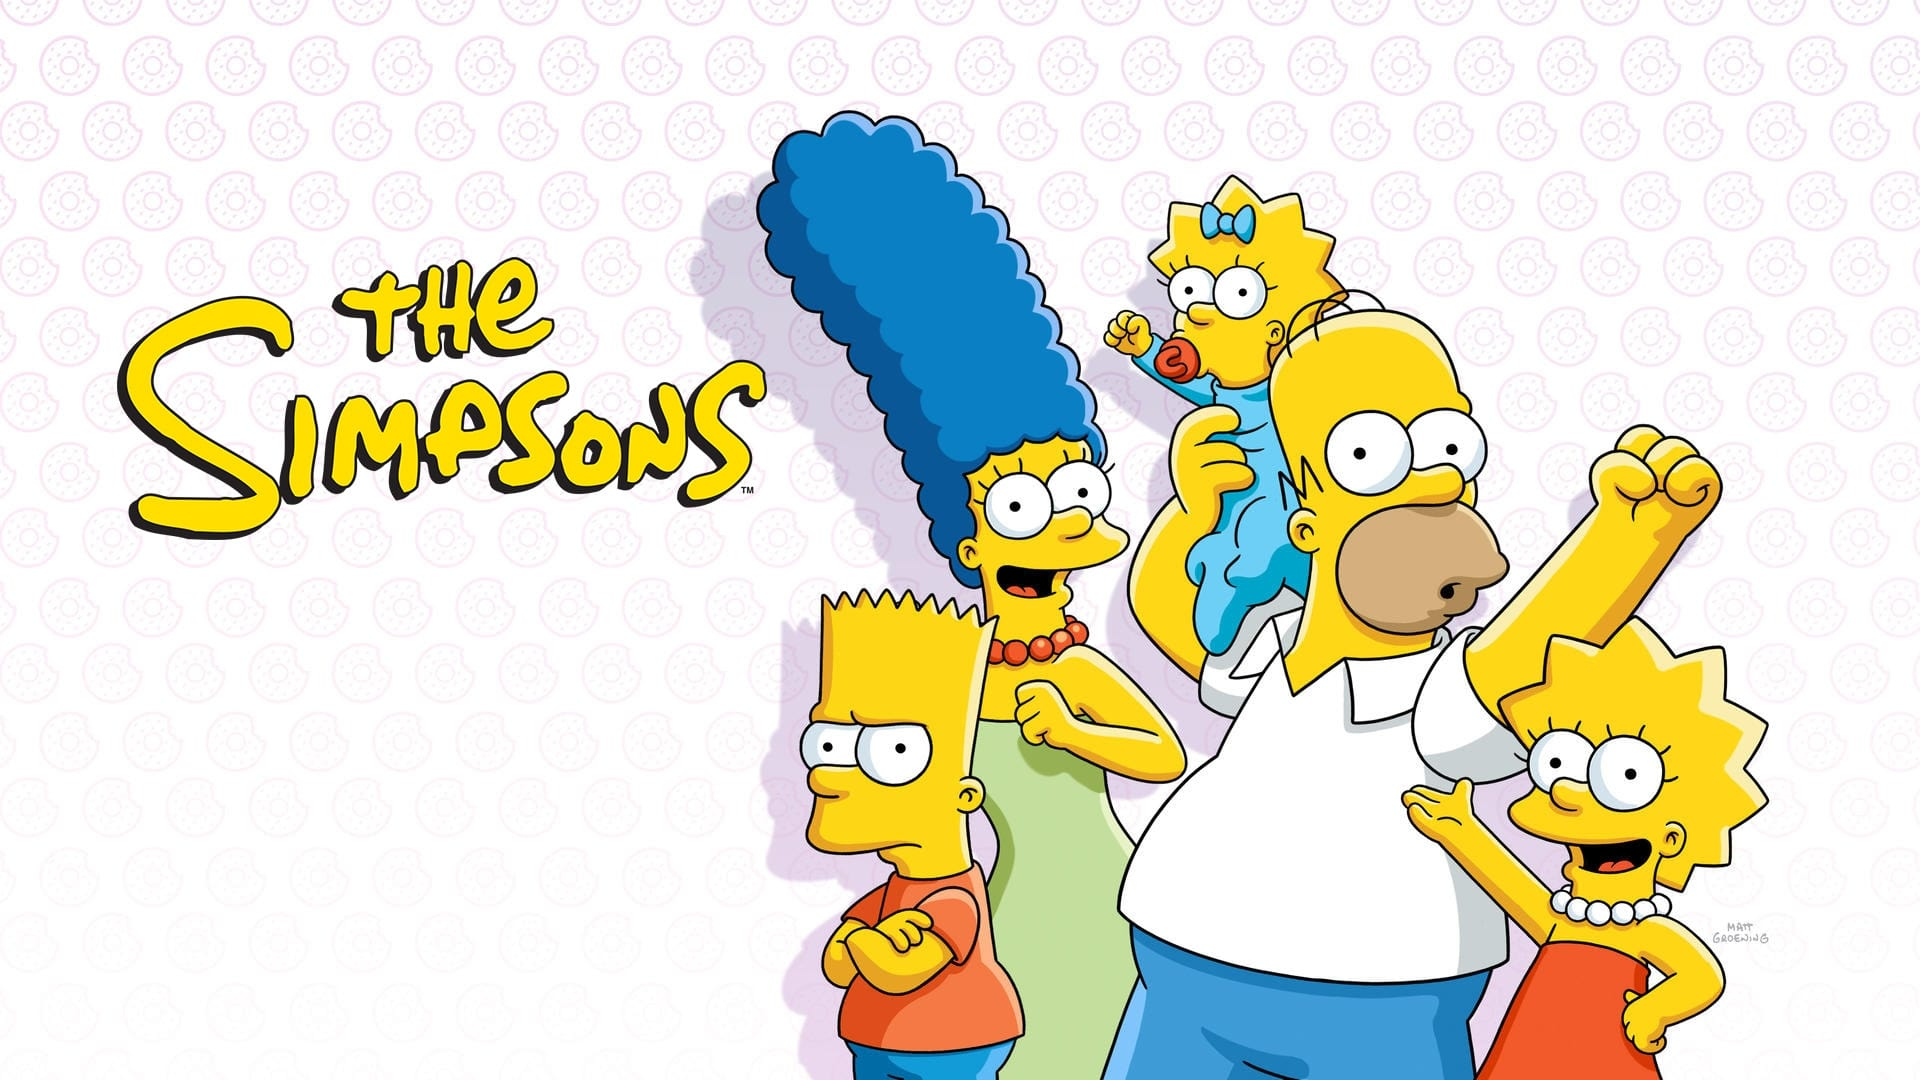 The Simpsons - Season 15